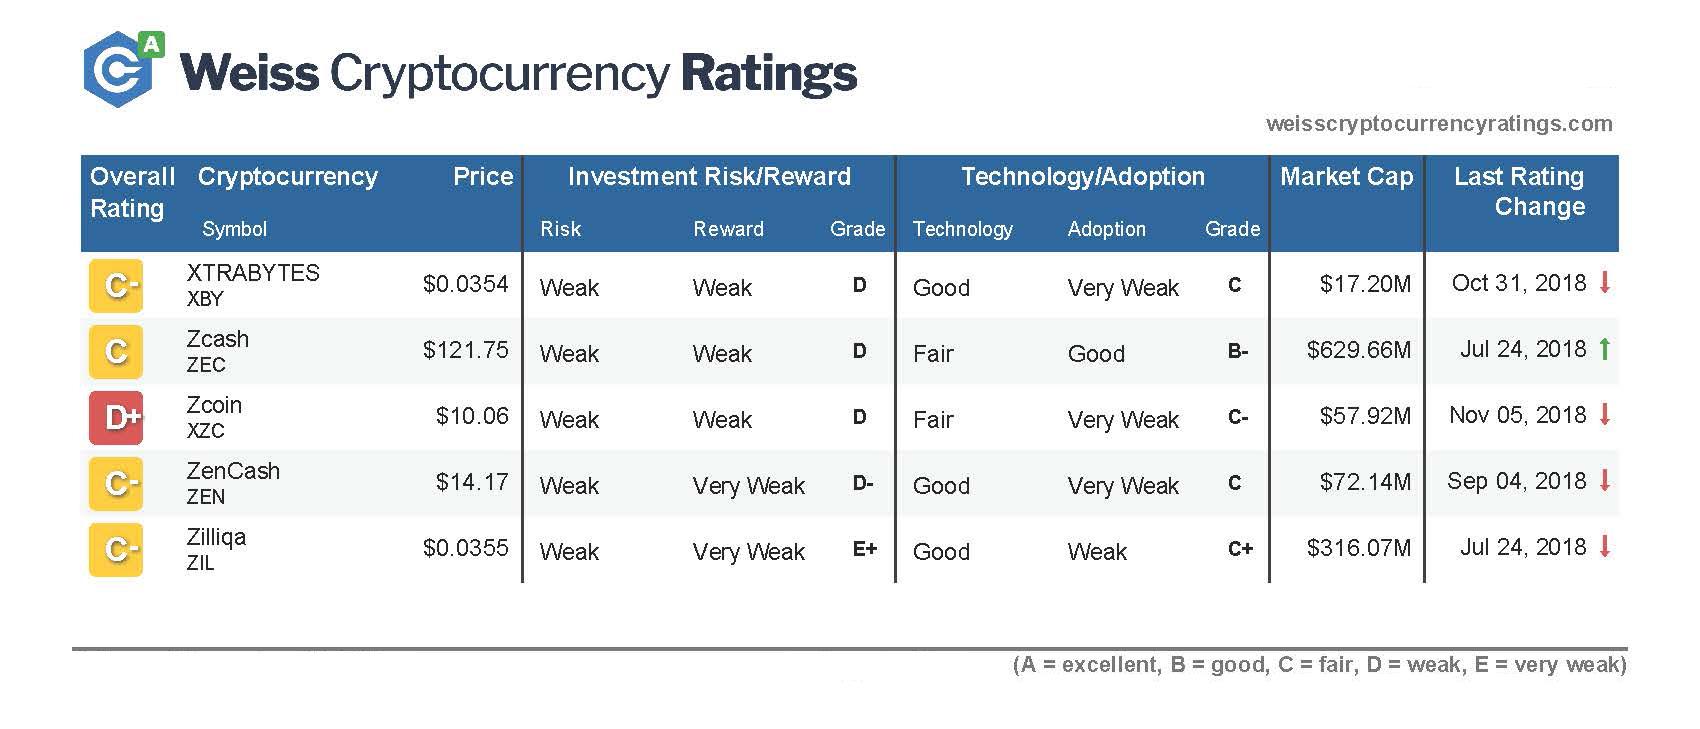 Weiss Cryptocurrency Ratings